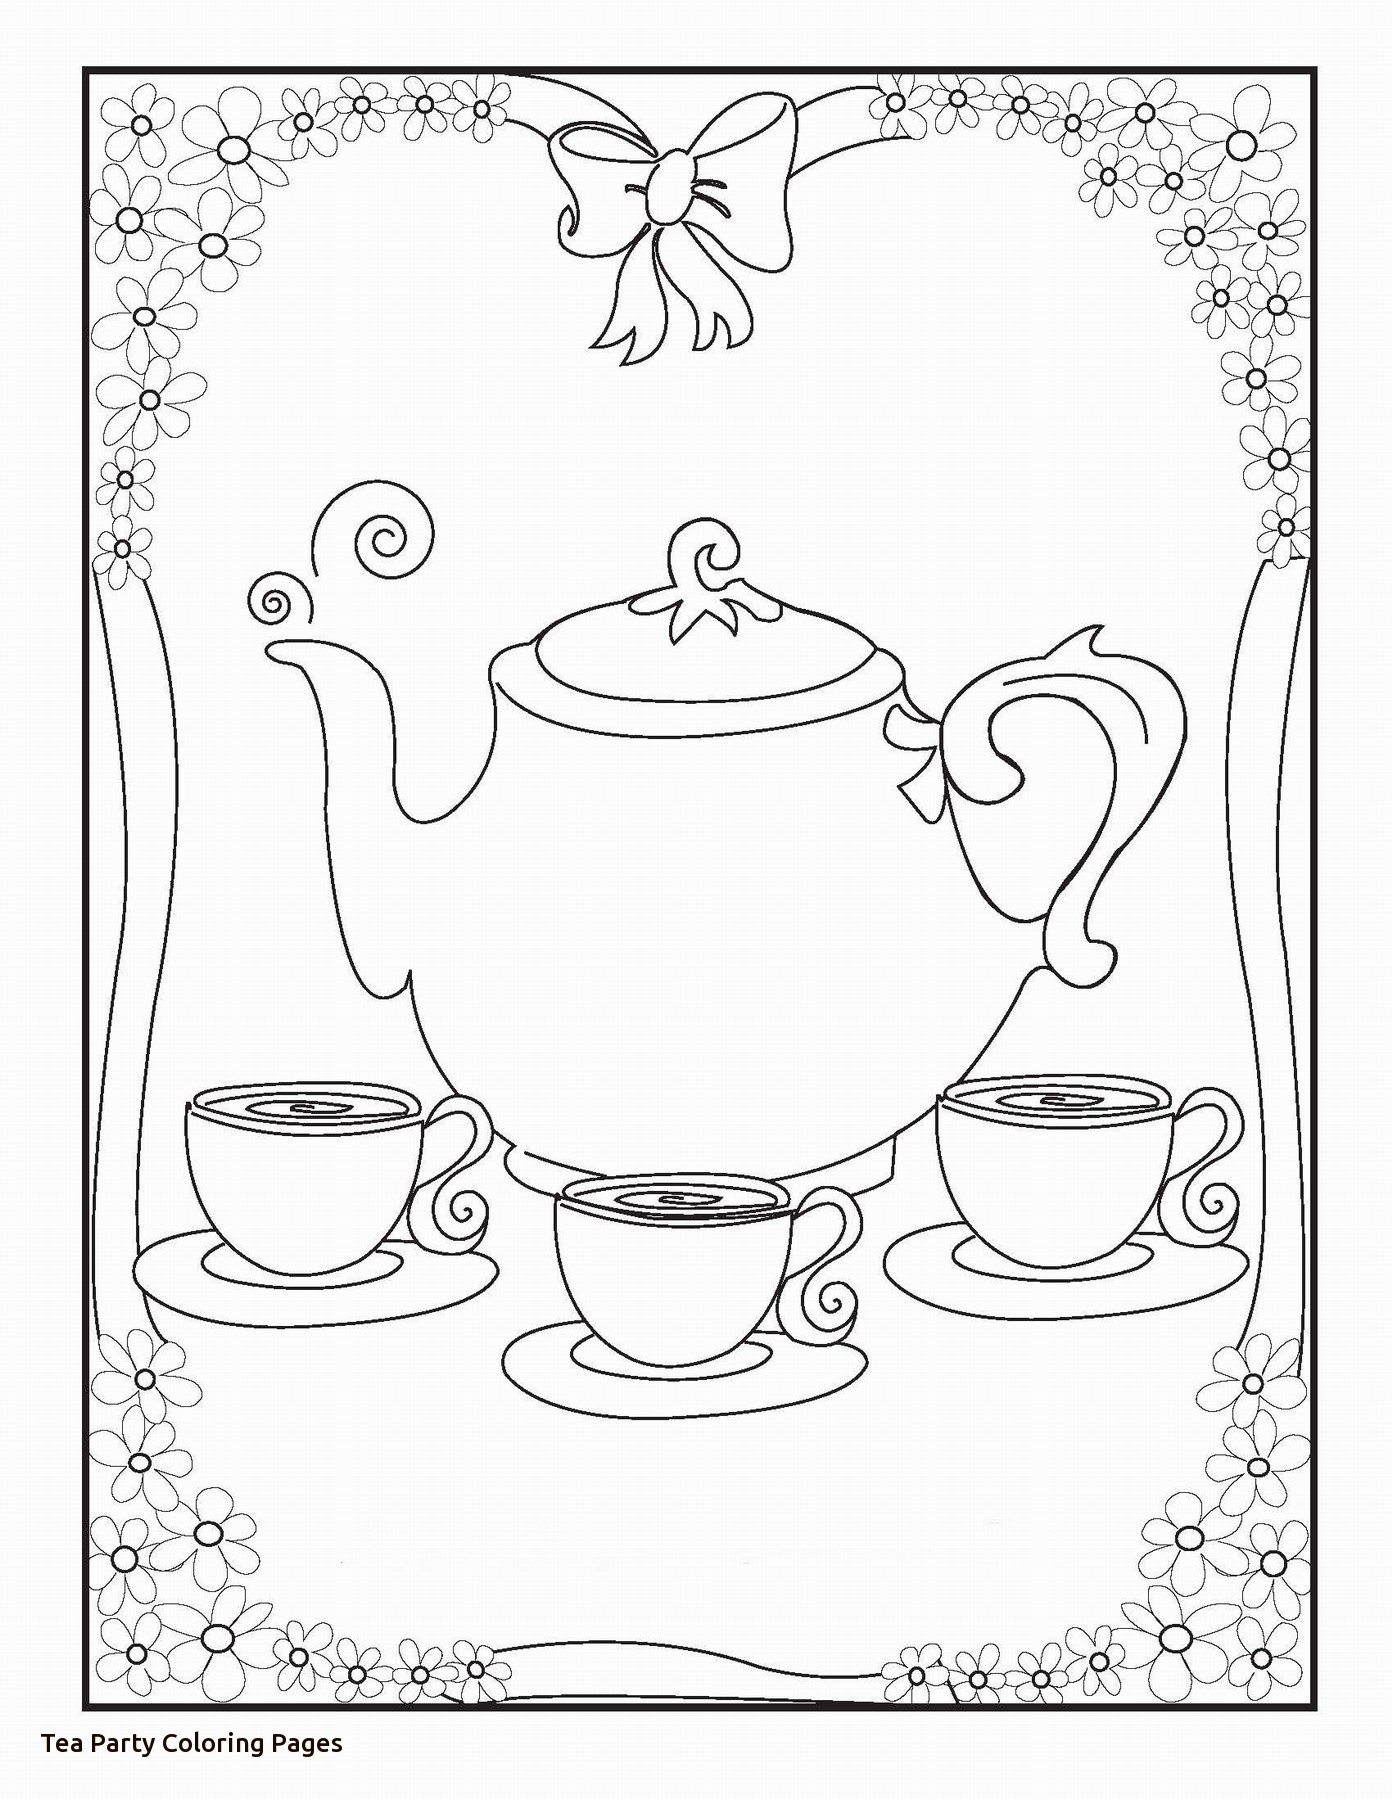 1392x1800 Impressive Design Tea Party Coloring Pages Teacup Boston Page Free